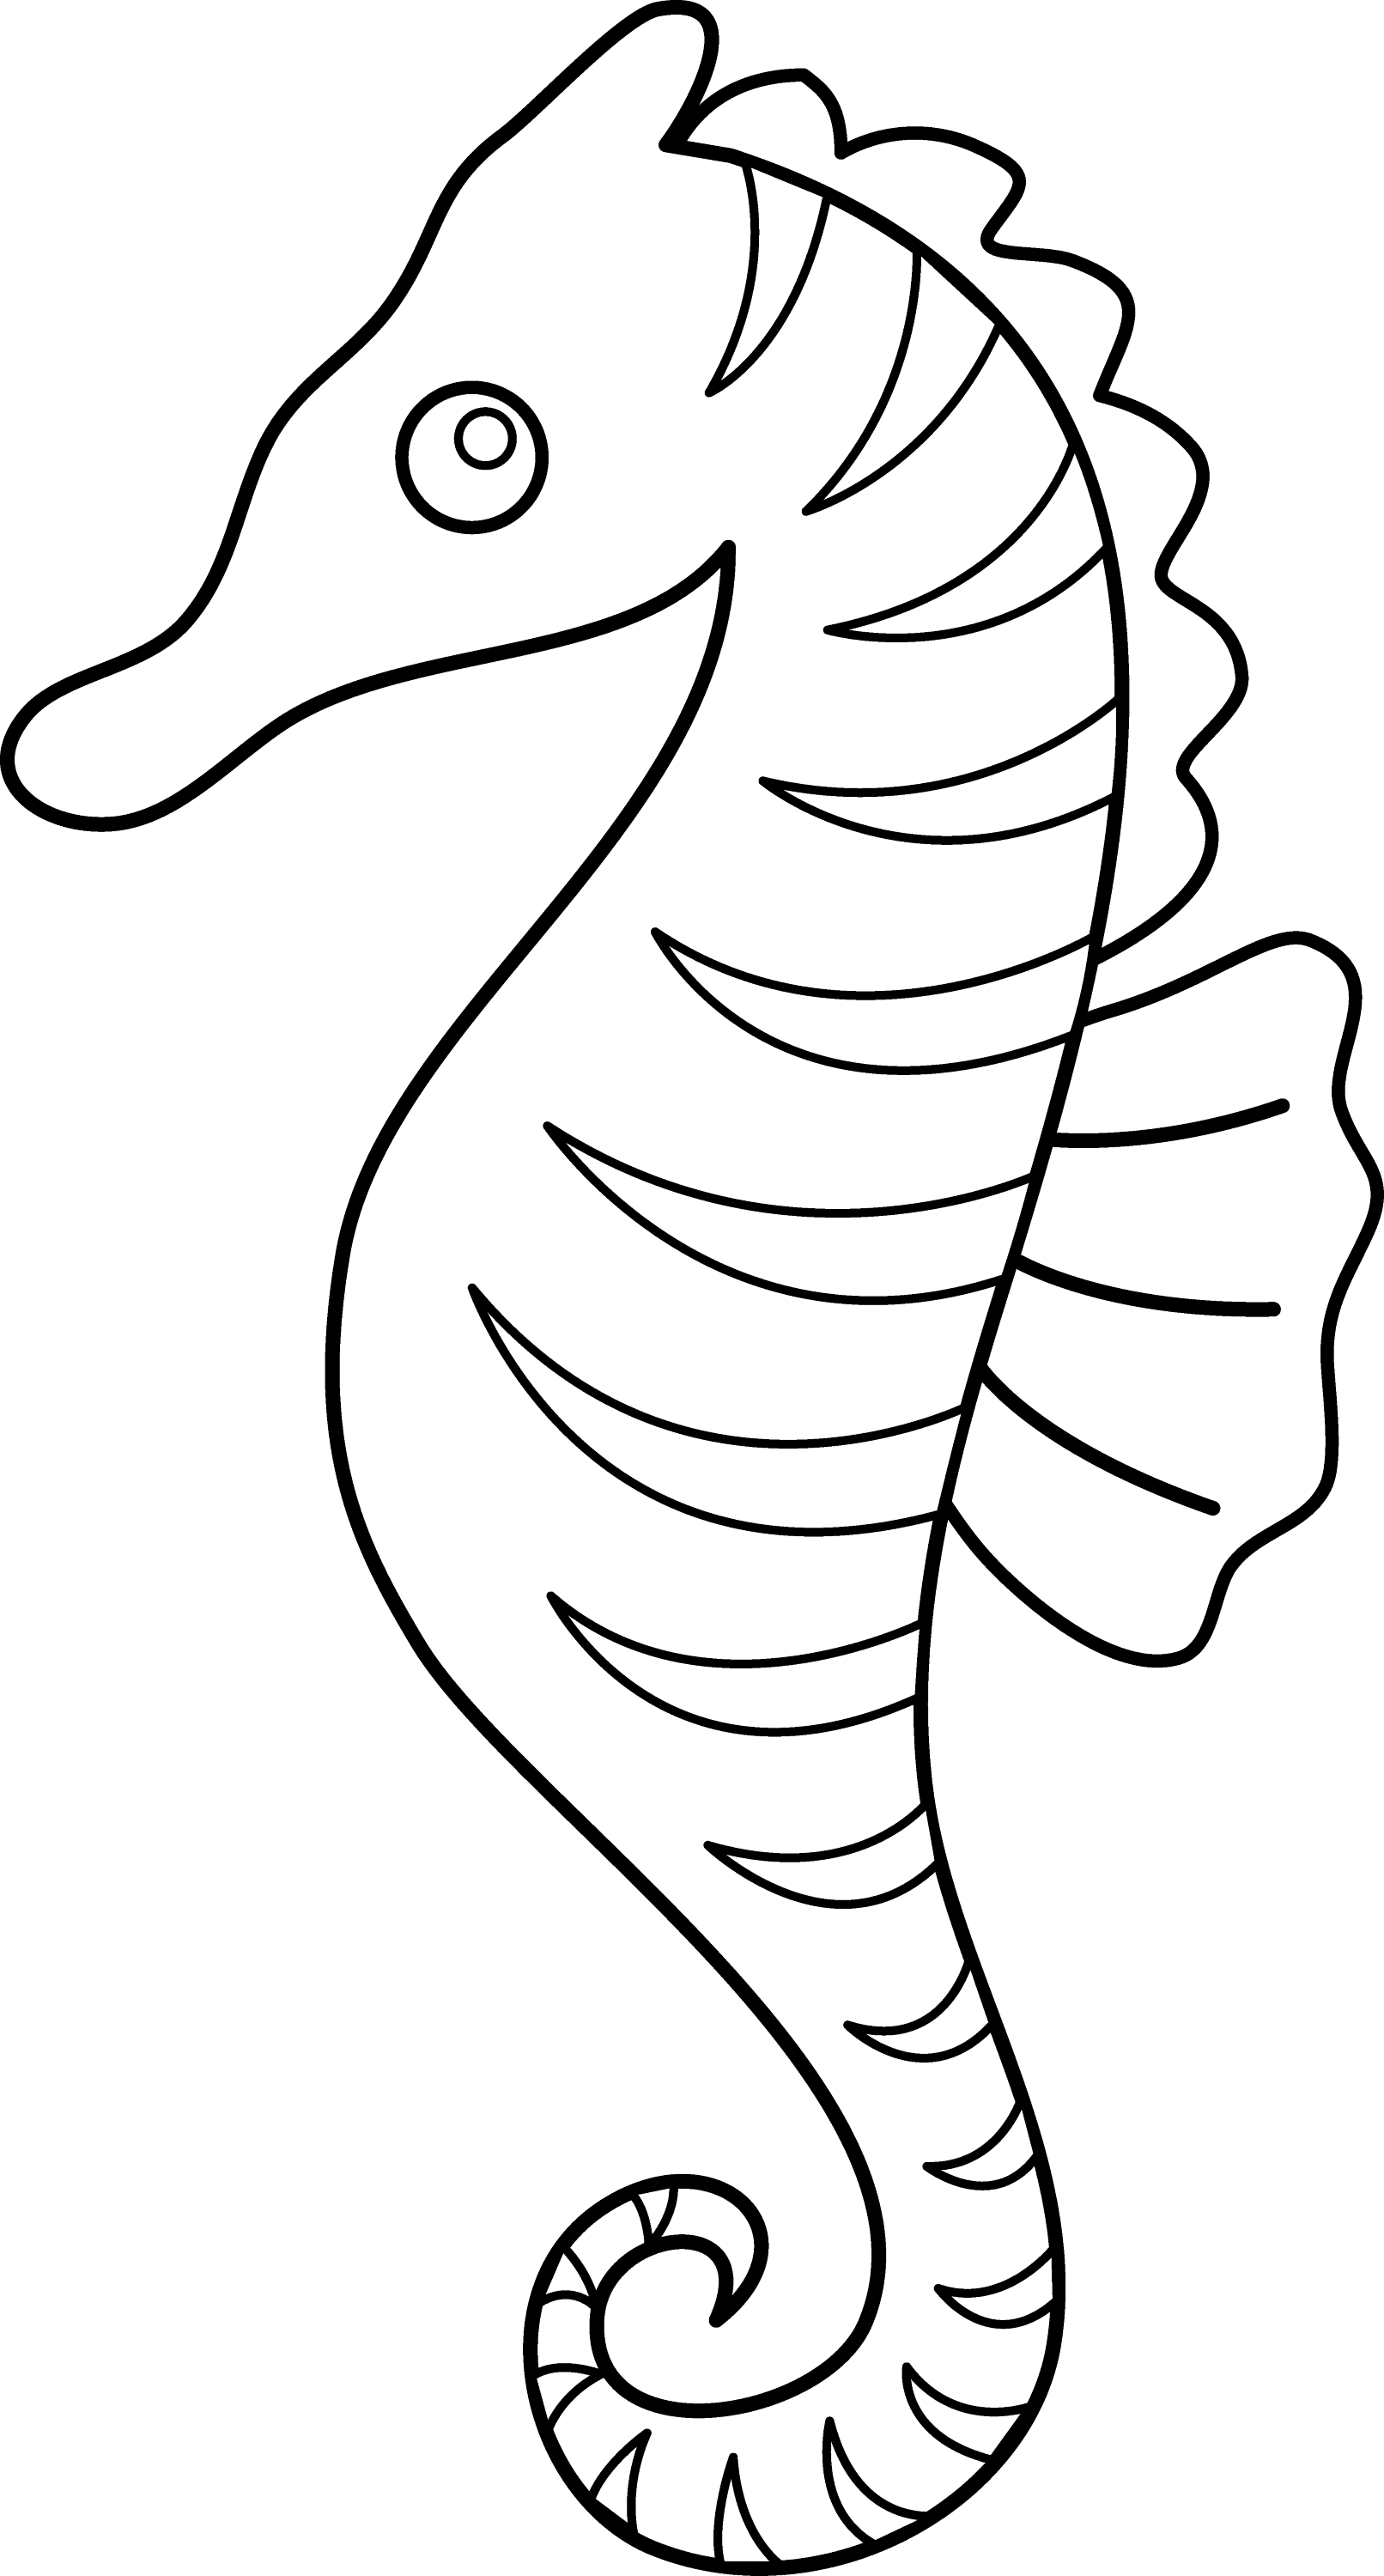 seahorse images for coloring 13 seahorse coloring pages print color craft images for seahorse coloring